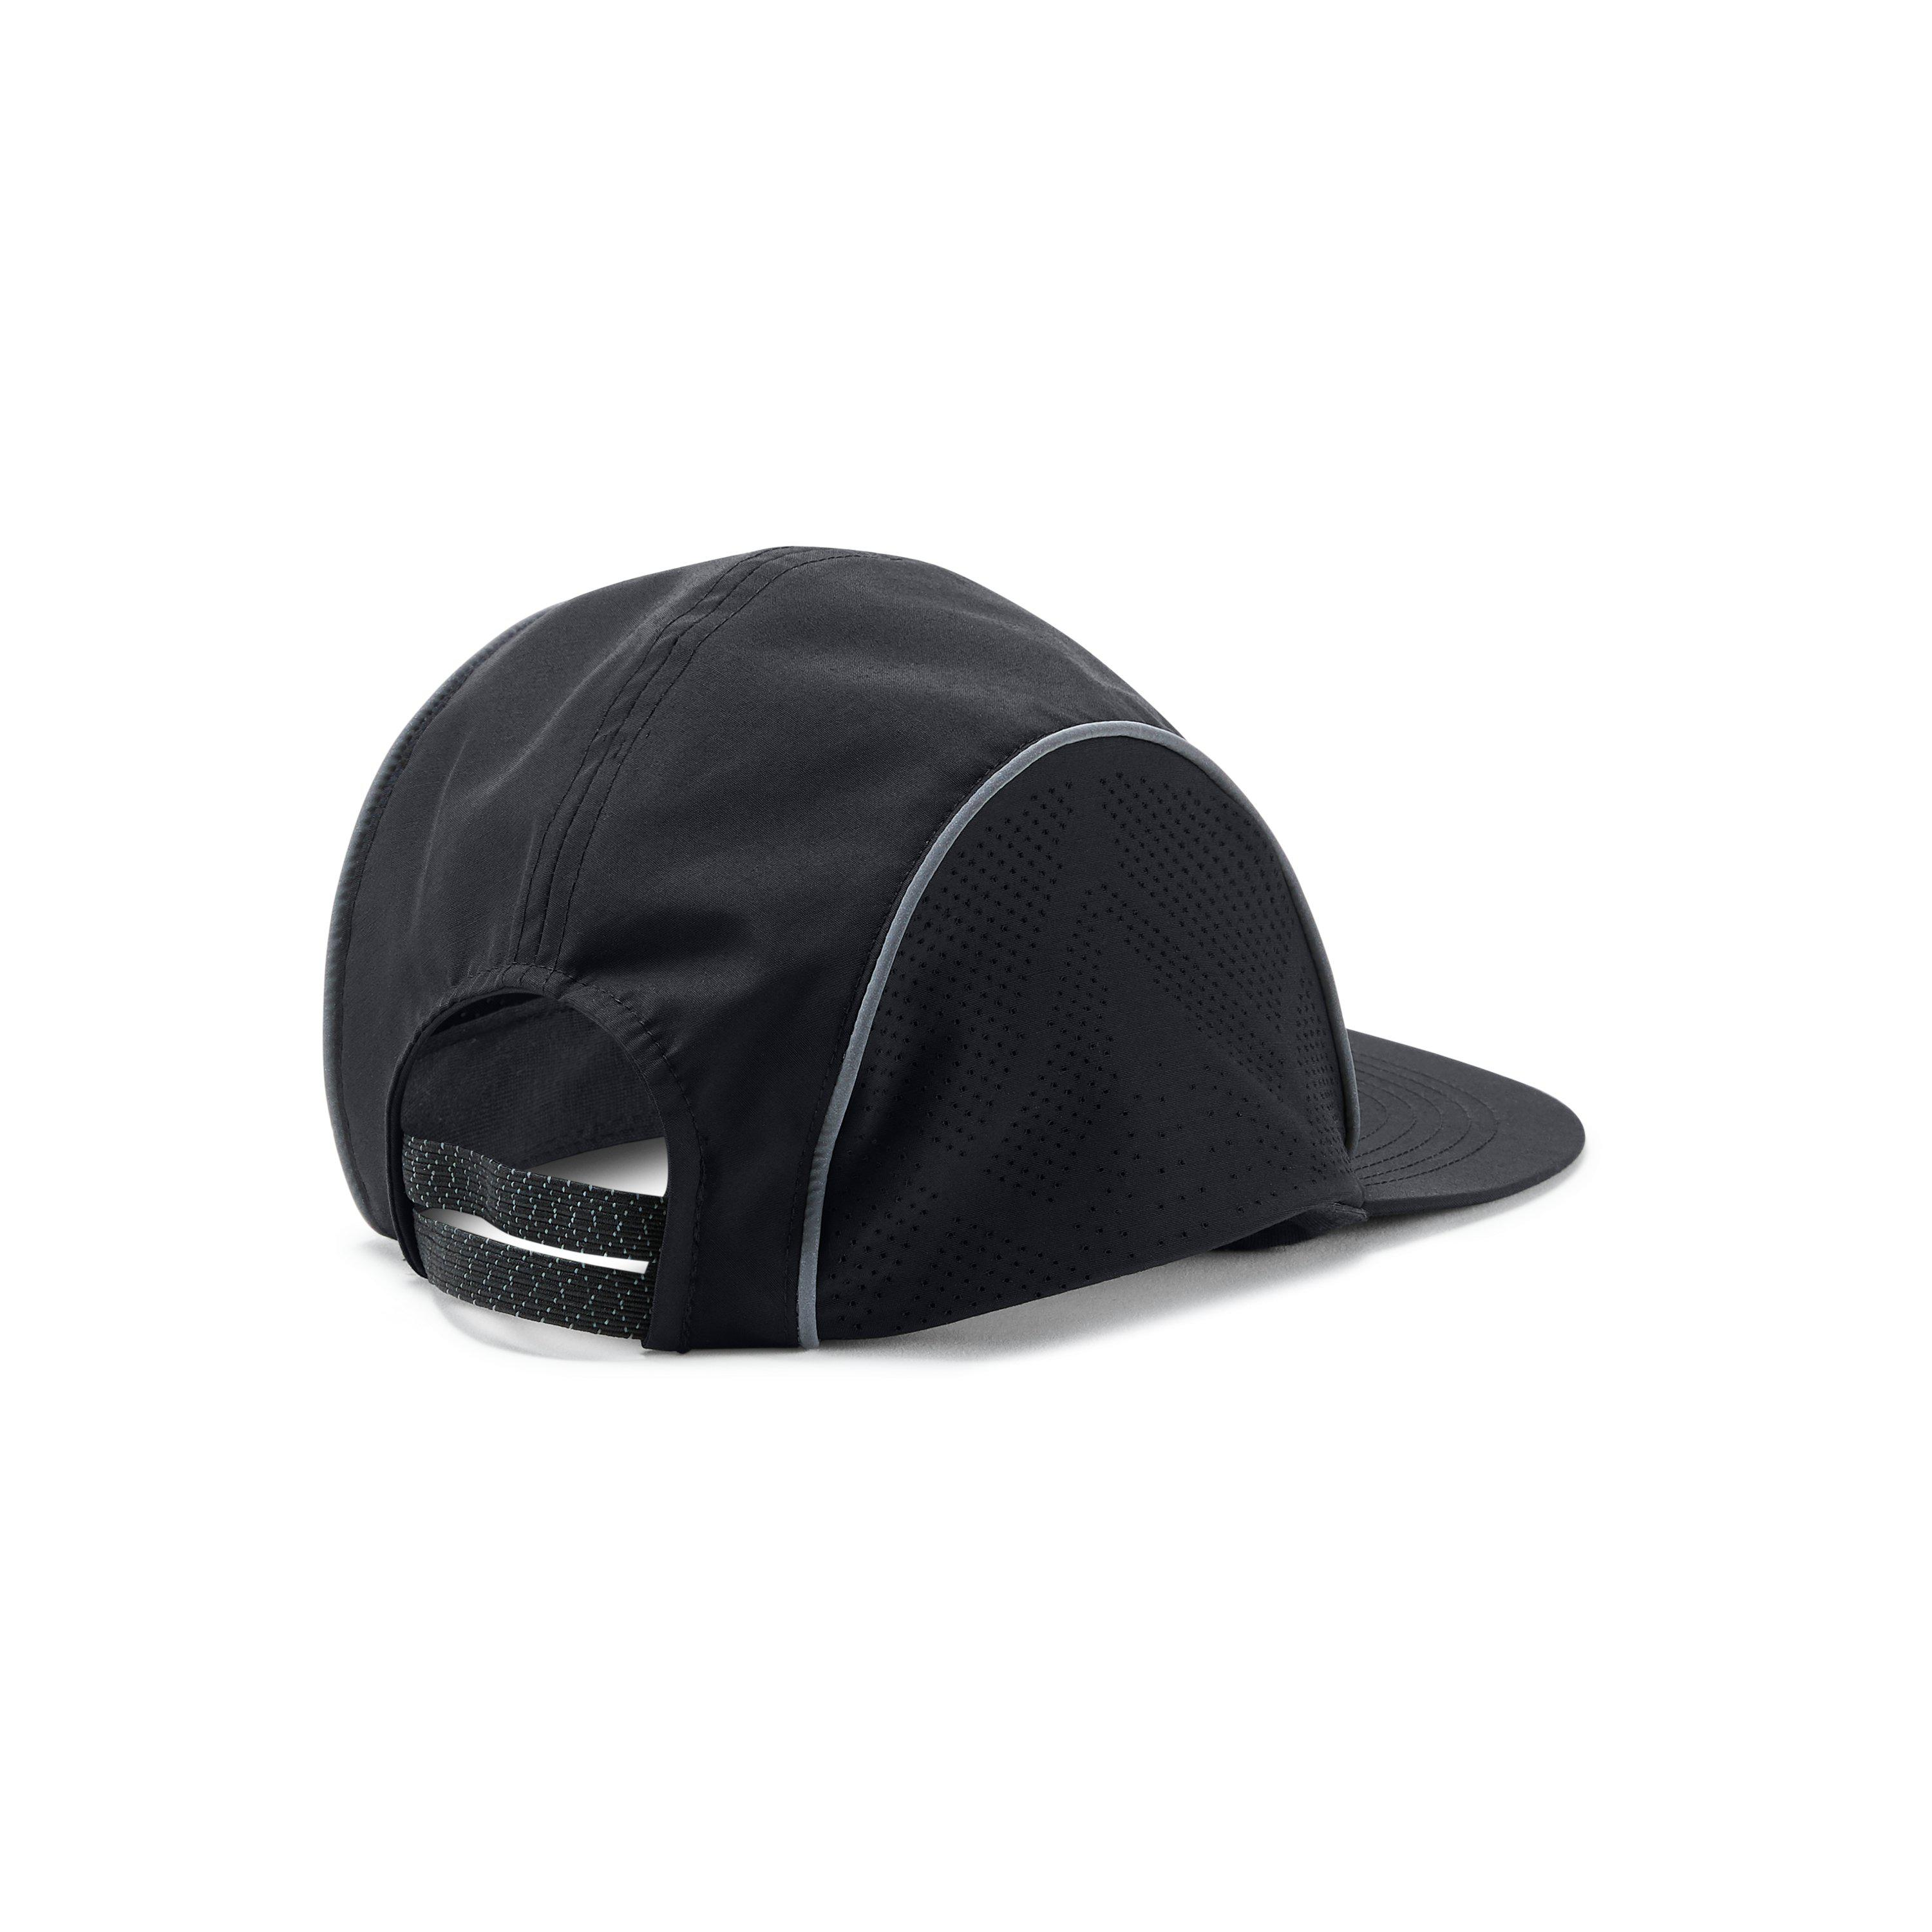 f4eb09dfea5 ... usa under armour black womens ua packable graphic cap for men lyst.  view fullscreen 7ae59